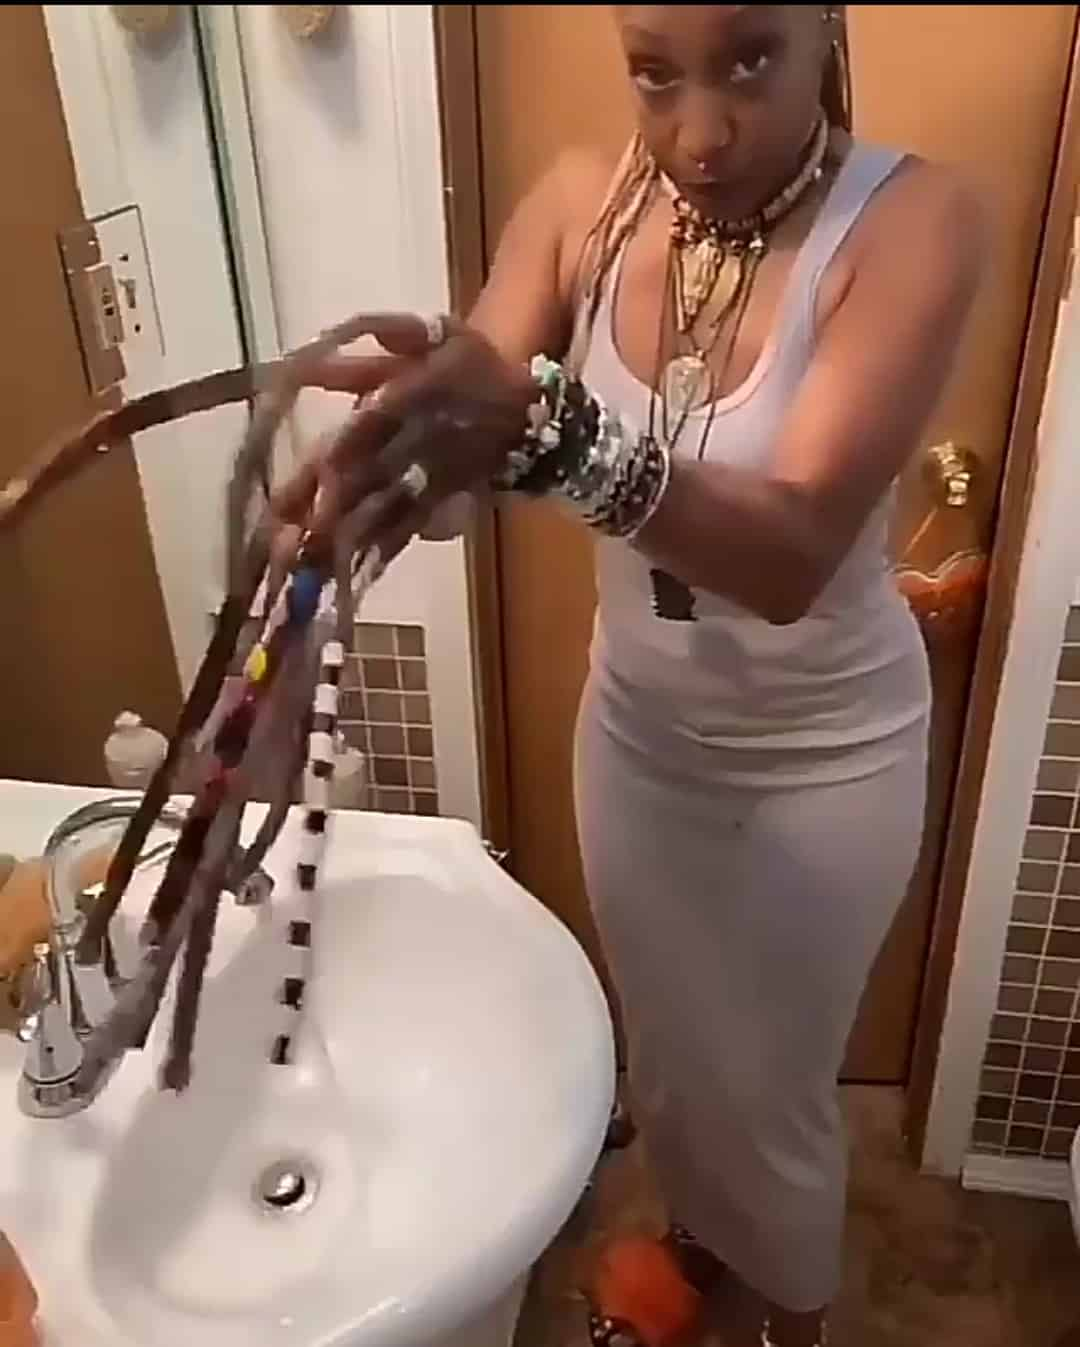 Woman with extremely long fingernails shows how she washes her hands